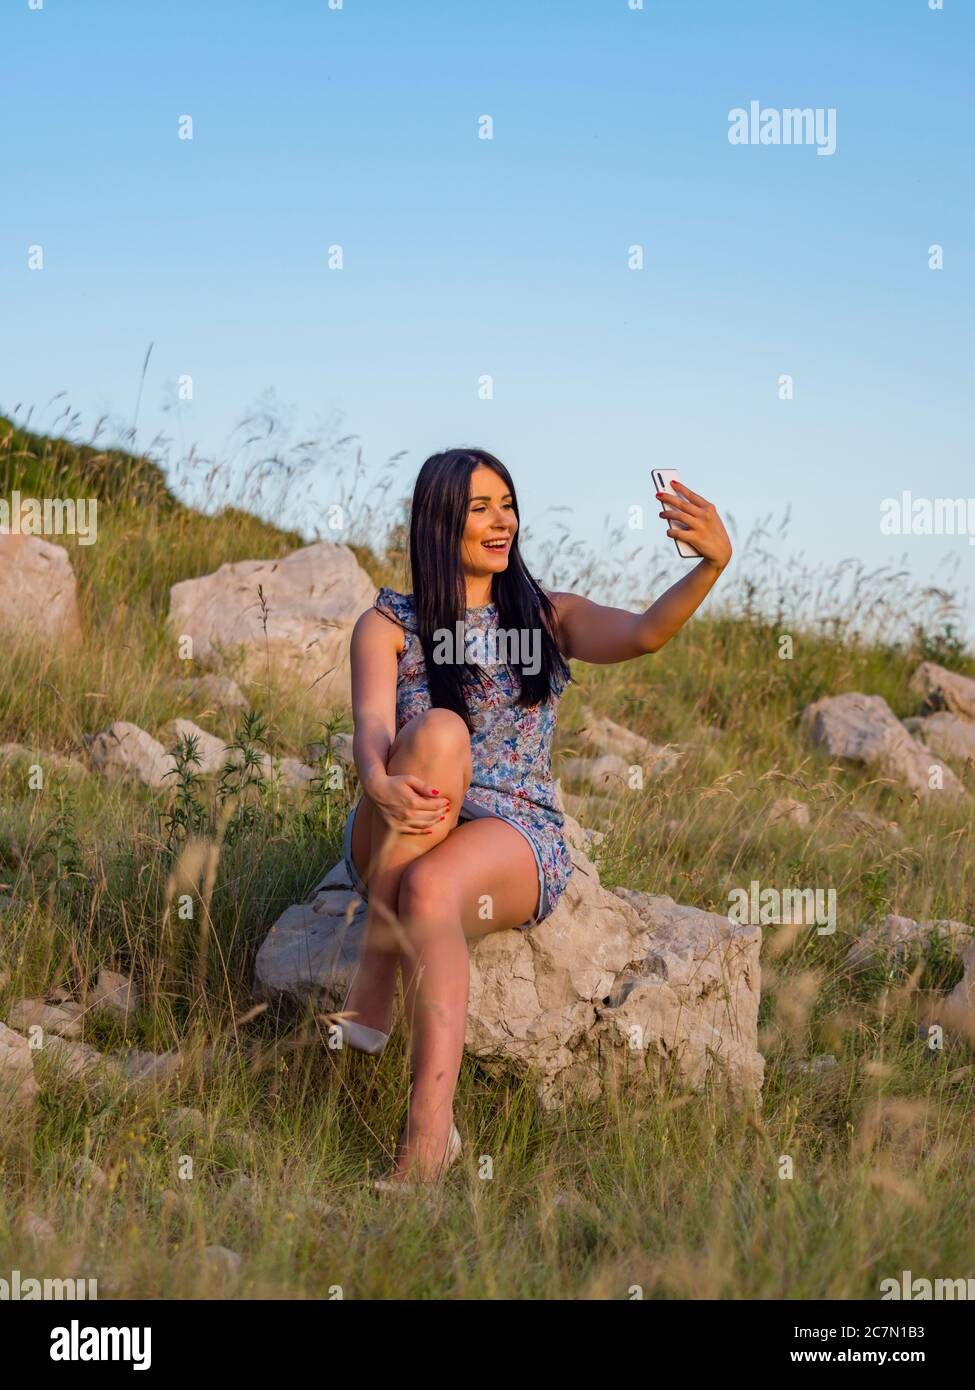 Selfie in nature using hand holding smartphone teengirl is sitting on rock in natural environment legs high heels highheels laughing laugh Stock Photo